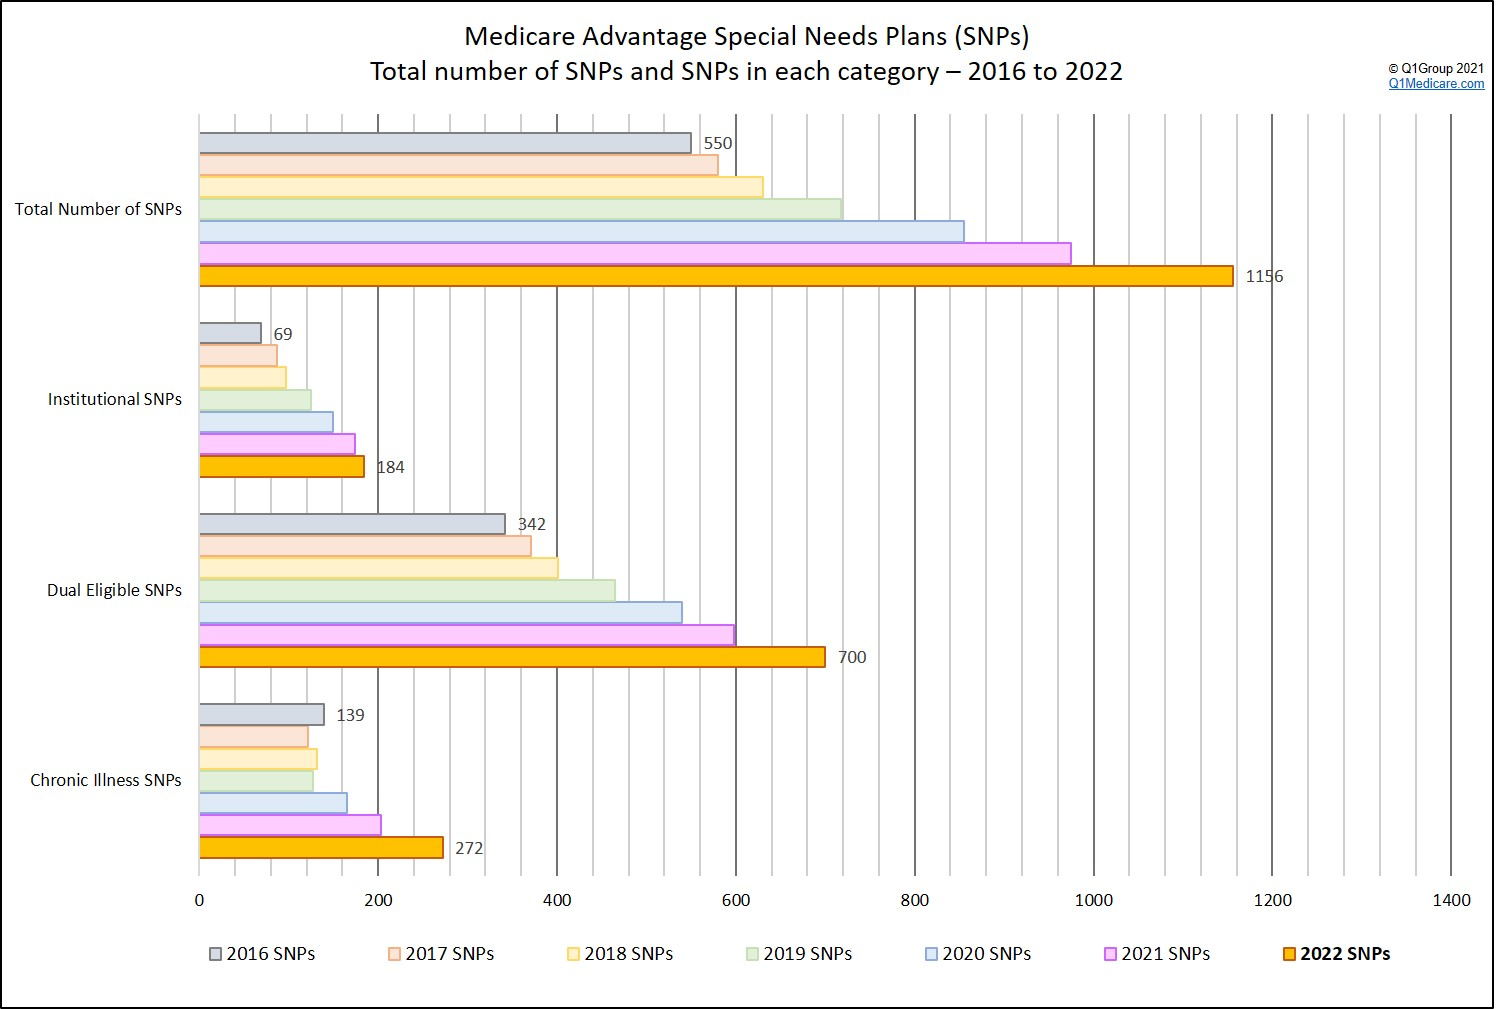 Showing the different types of Medicare Advantage Special Needs Plans( SNPs) over the years